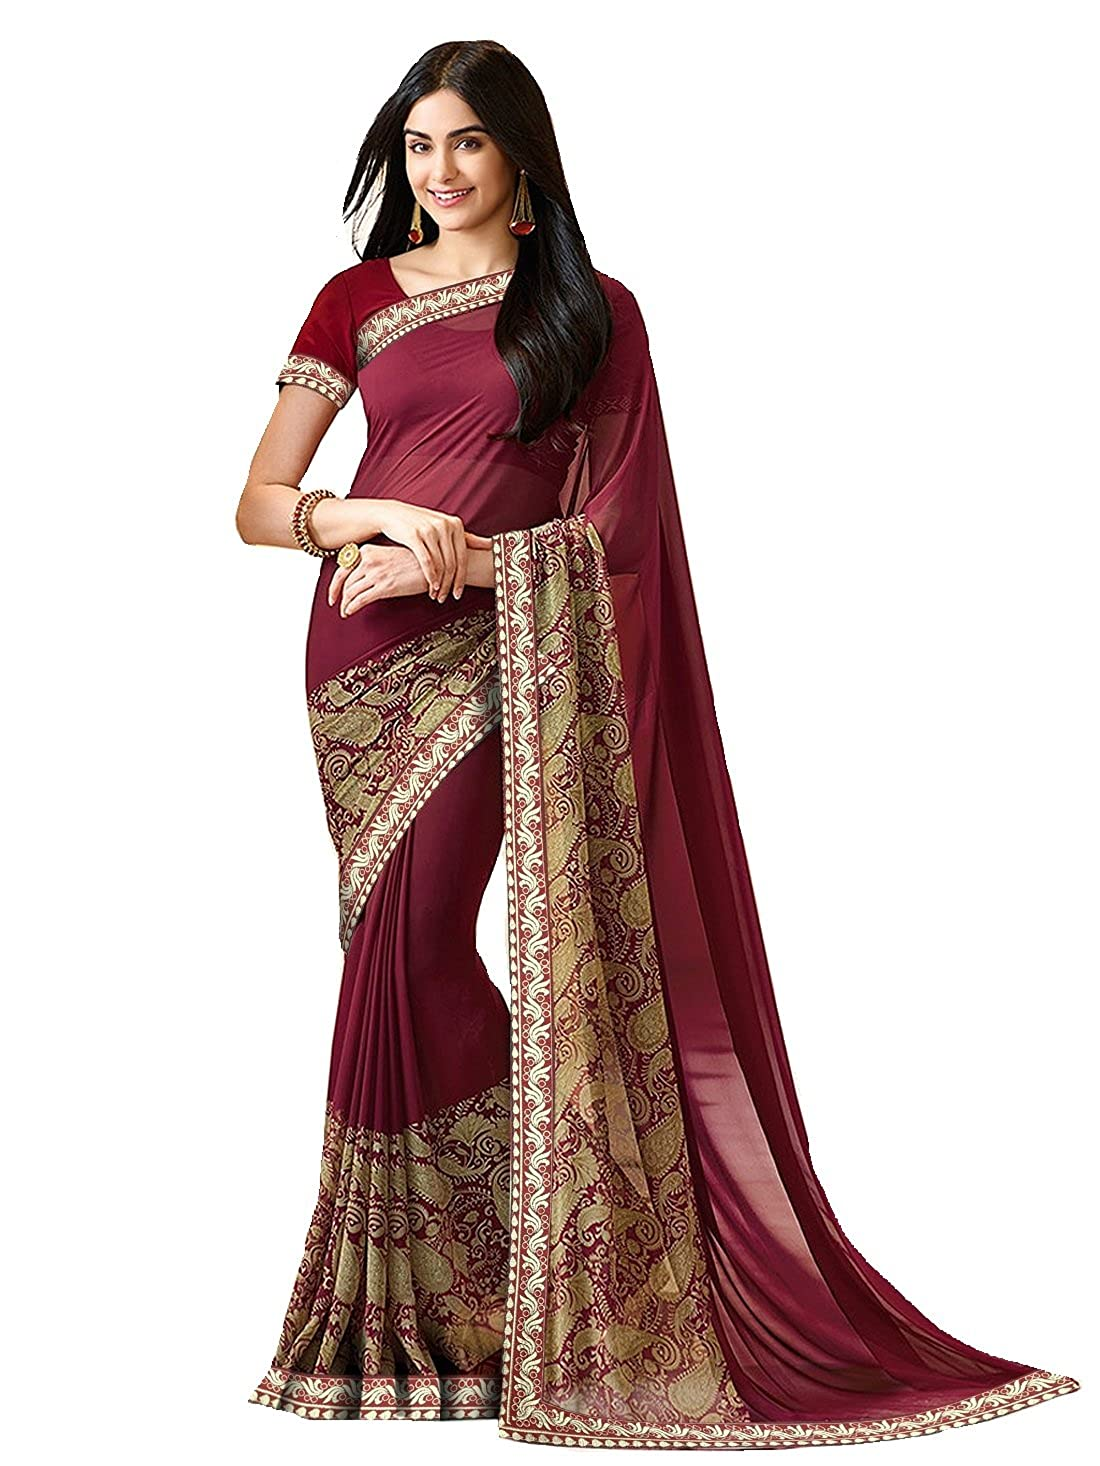 32bf3db0cd7ba7 Antique Store Red Bangalory Silk Saree With Blouse  Amazon.in  Clothing    Accessories